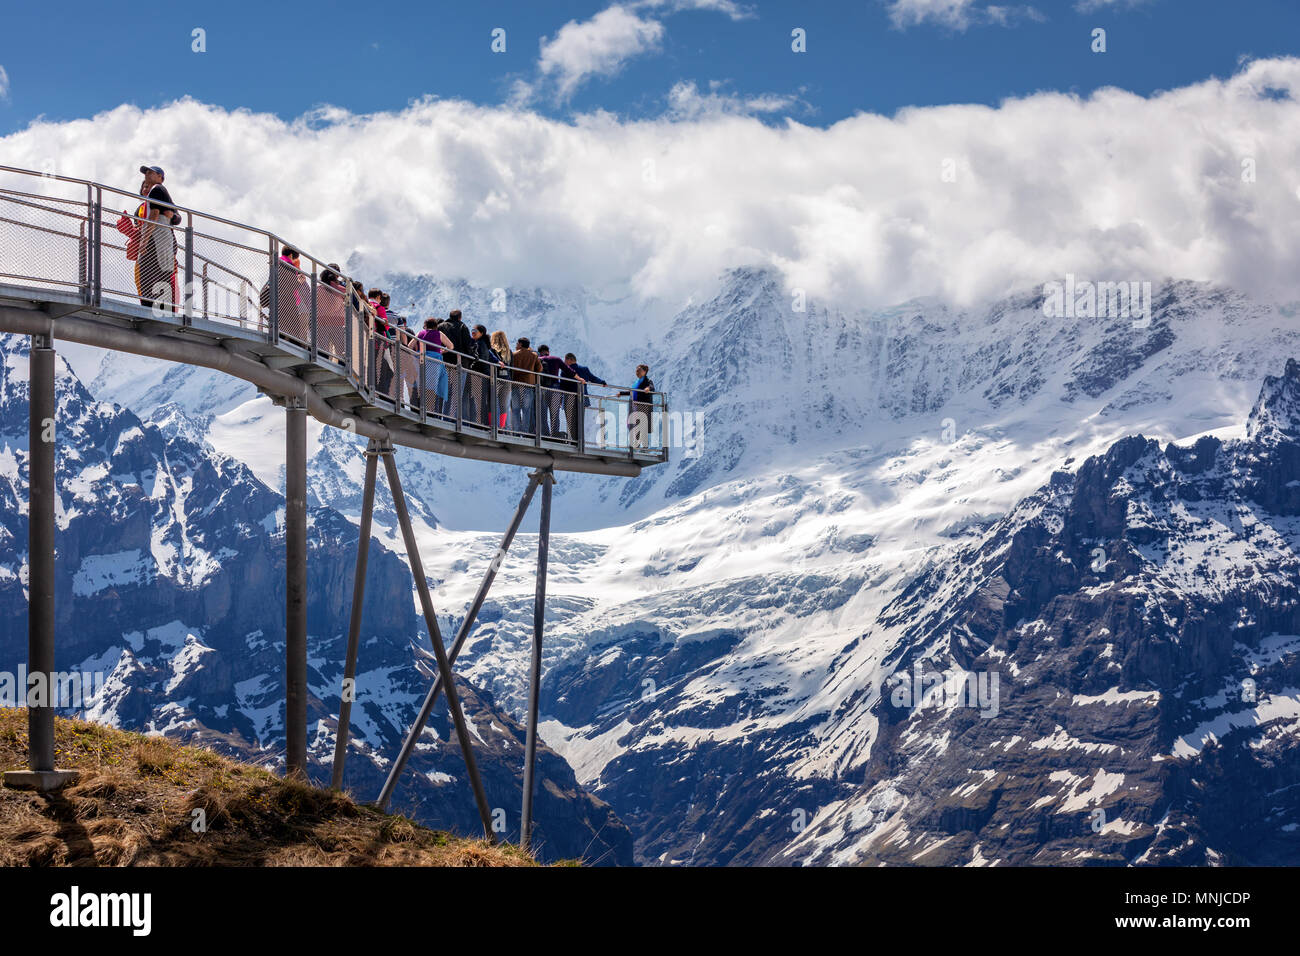 People on the observation platform at the top of First mountain above Grindelwald, Bernese Oberland, Switzerland - Stock Image